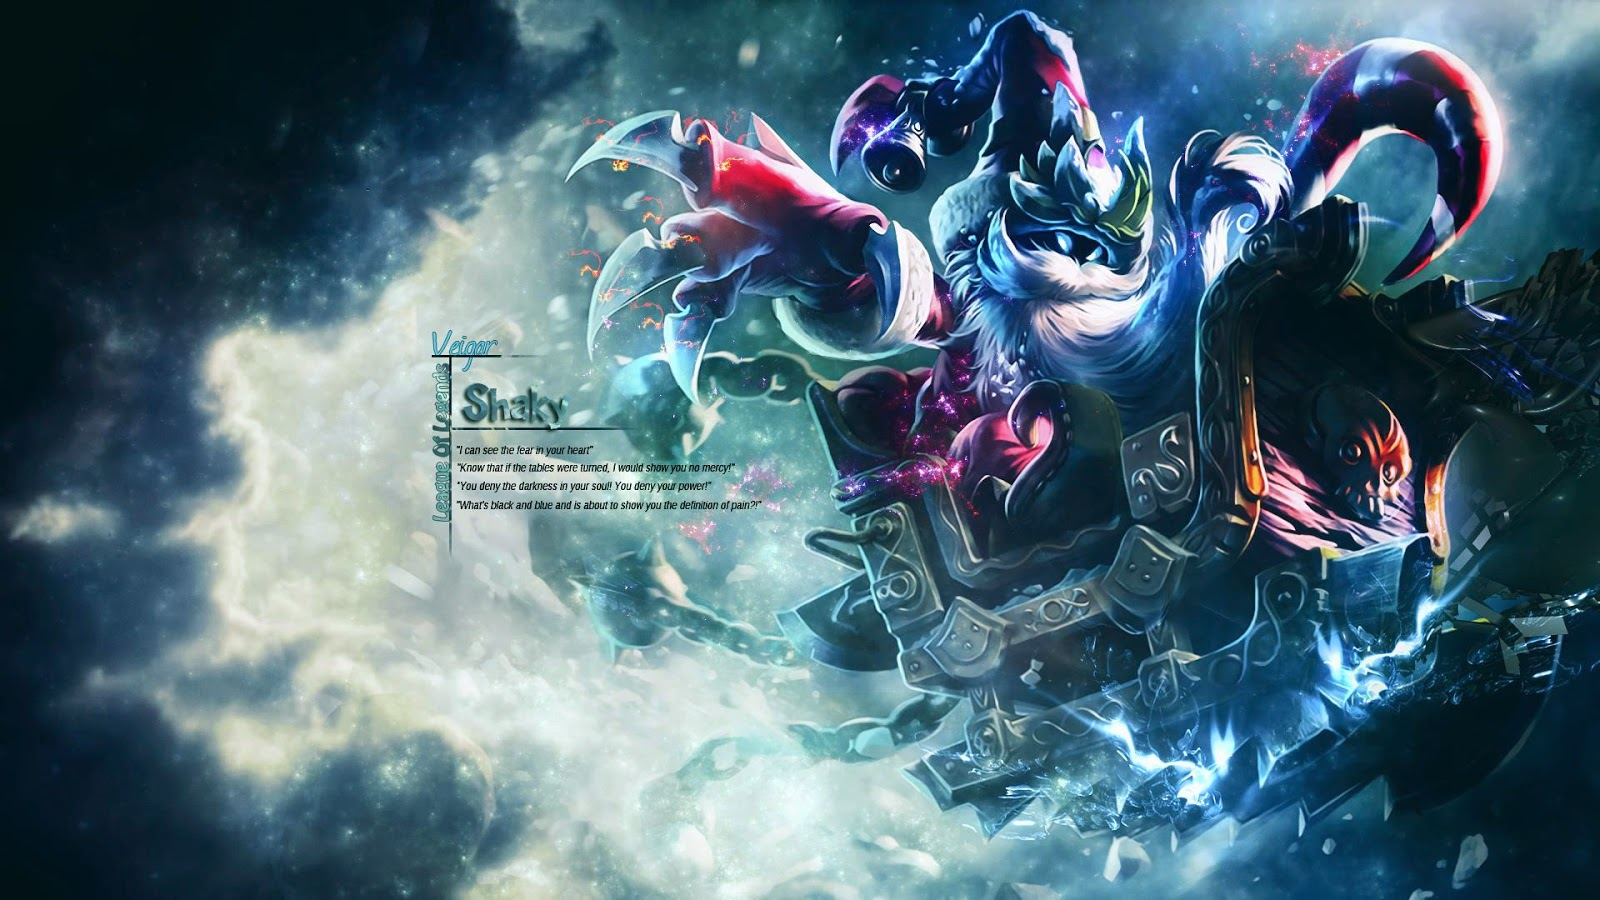 Veigar League of Legends Wallpaper